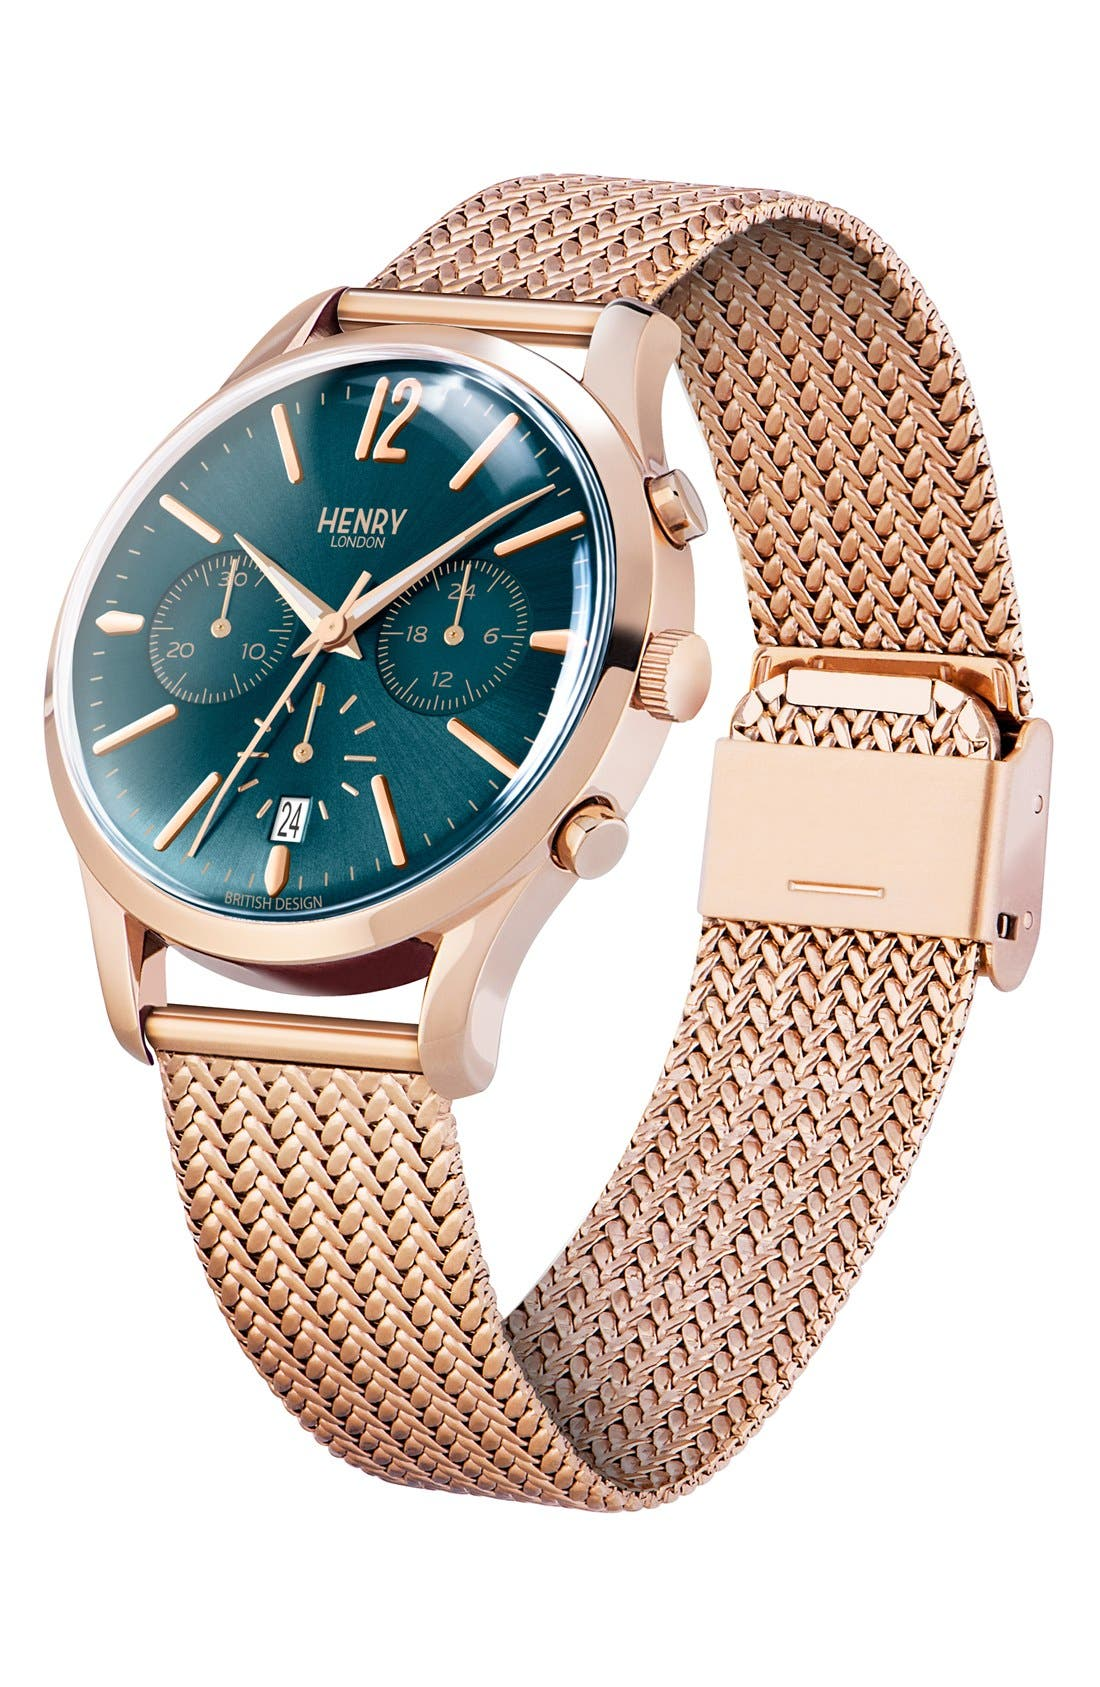 'Stratford' Chronograph Mesh Strap Watch, 38mm,                             Alternate thumbnail 2, color,                             ROSE GOLD/ TEAL